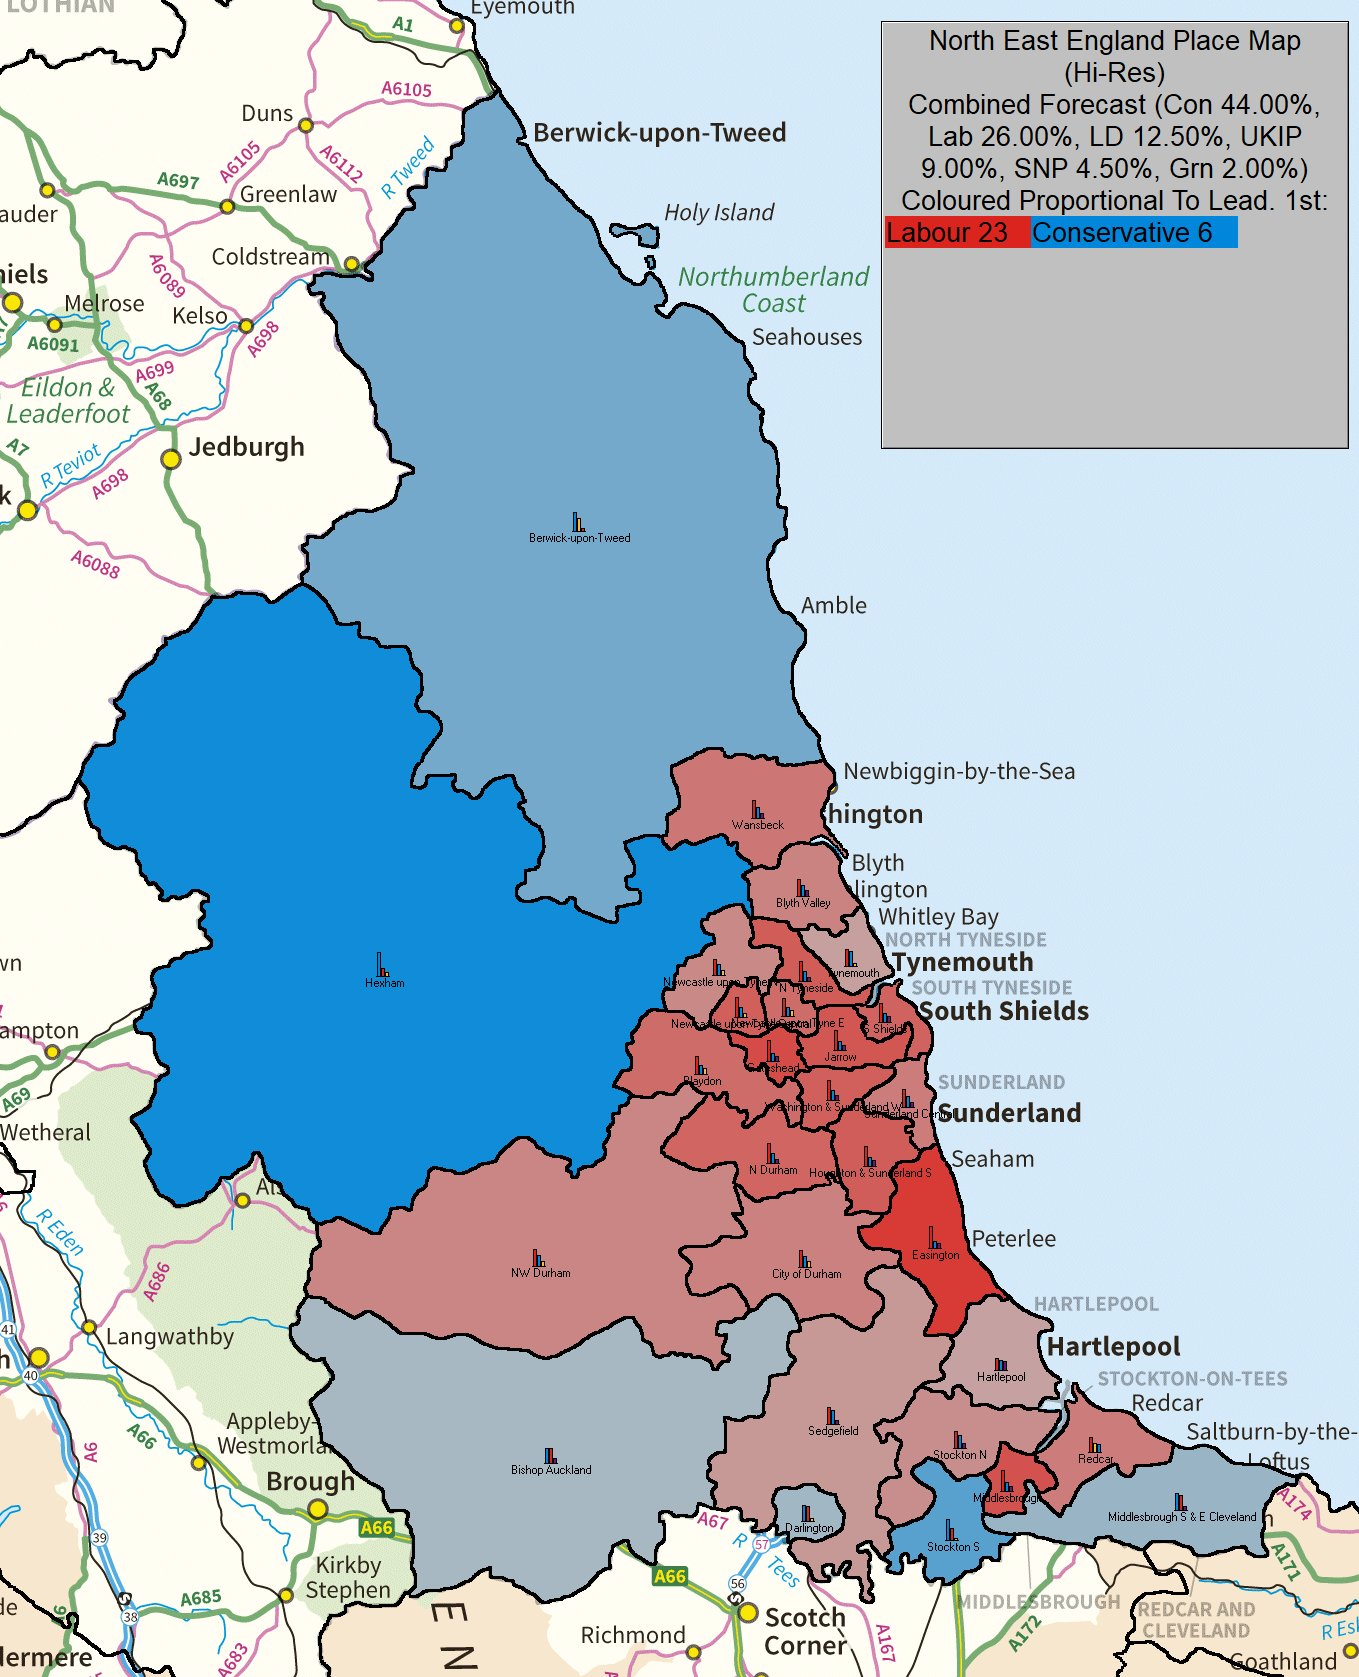 S E England Map.Uk Elect Uk General Election Forecast For North East England